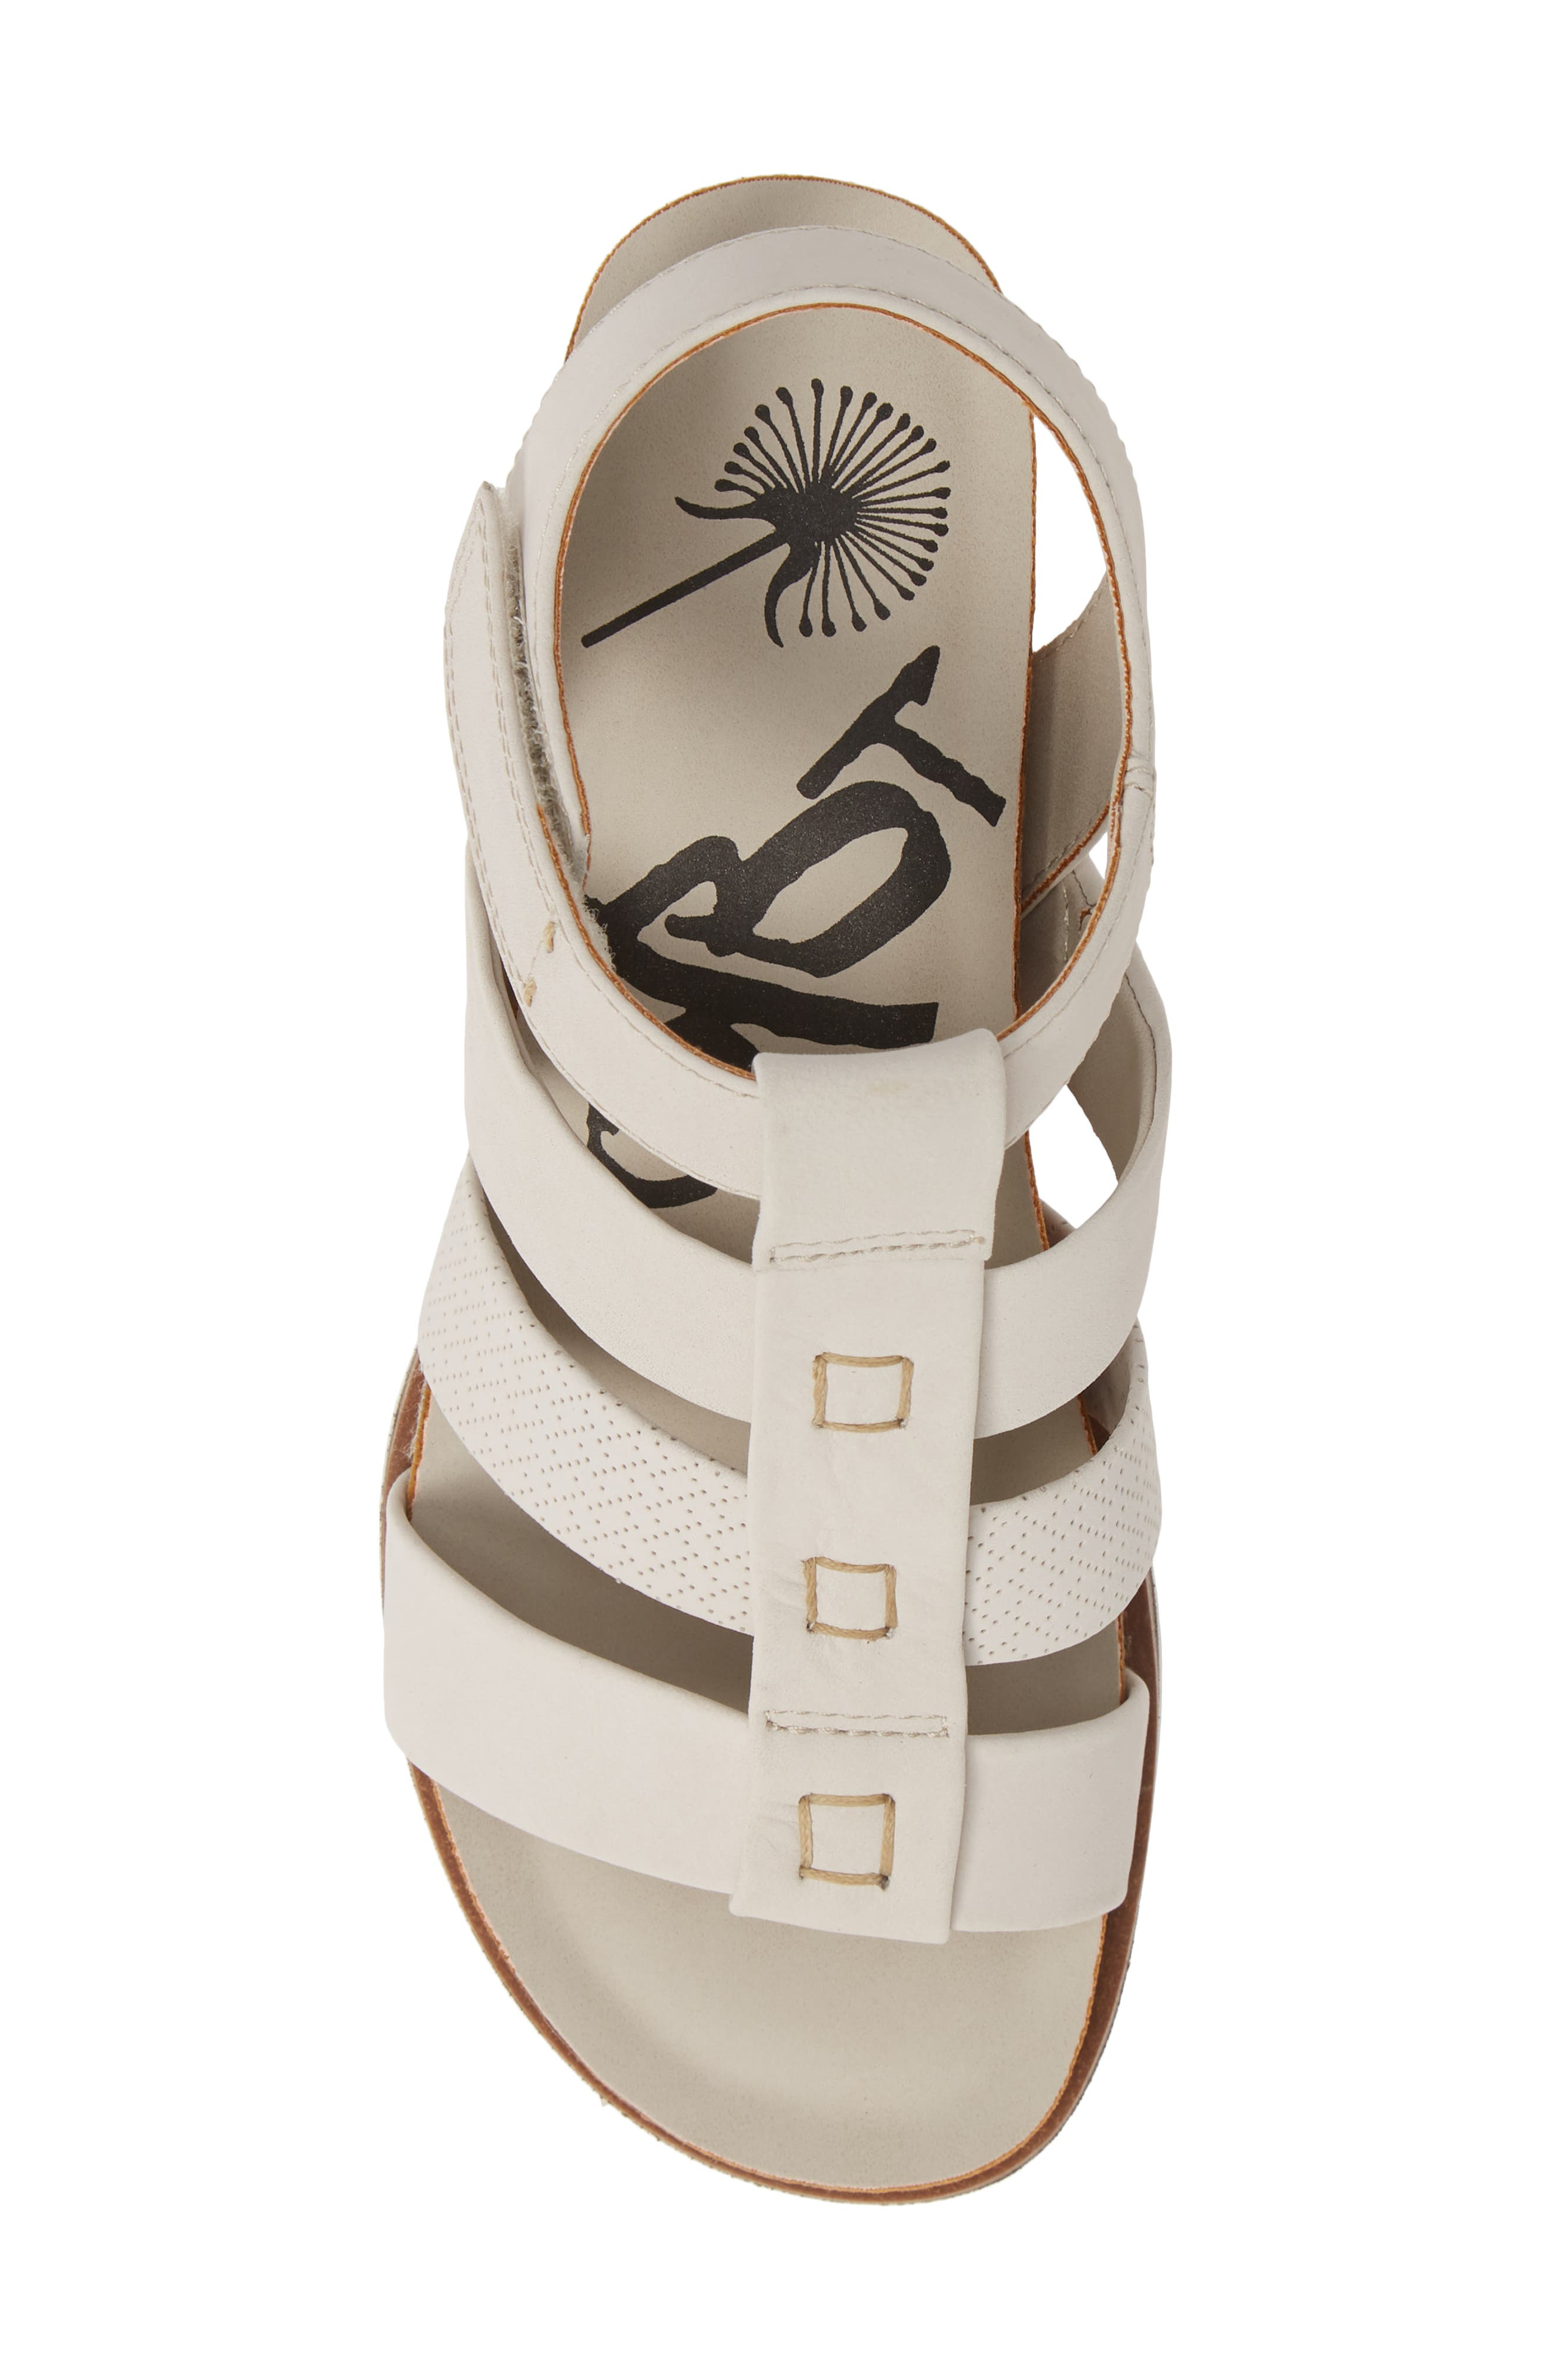 New Moon Wedge Sandal,                             Alternate thumbnail 5, color,                             DOVE GREY LEATHER